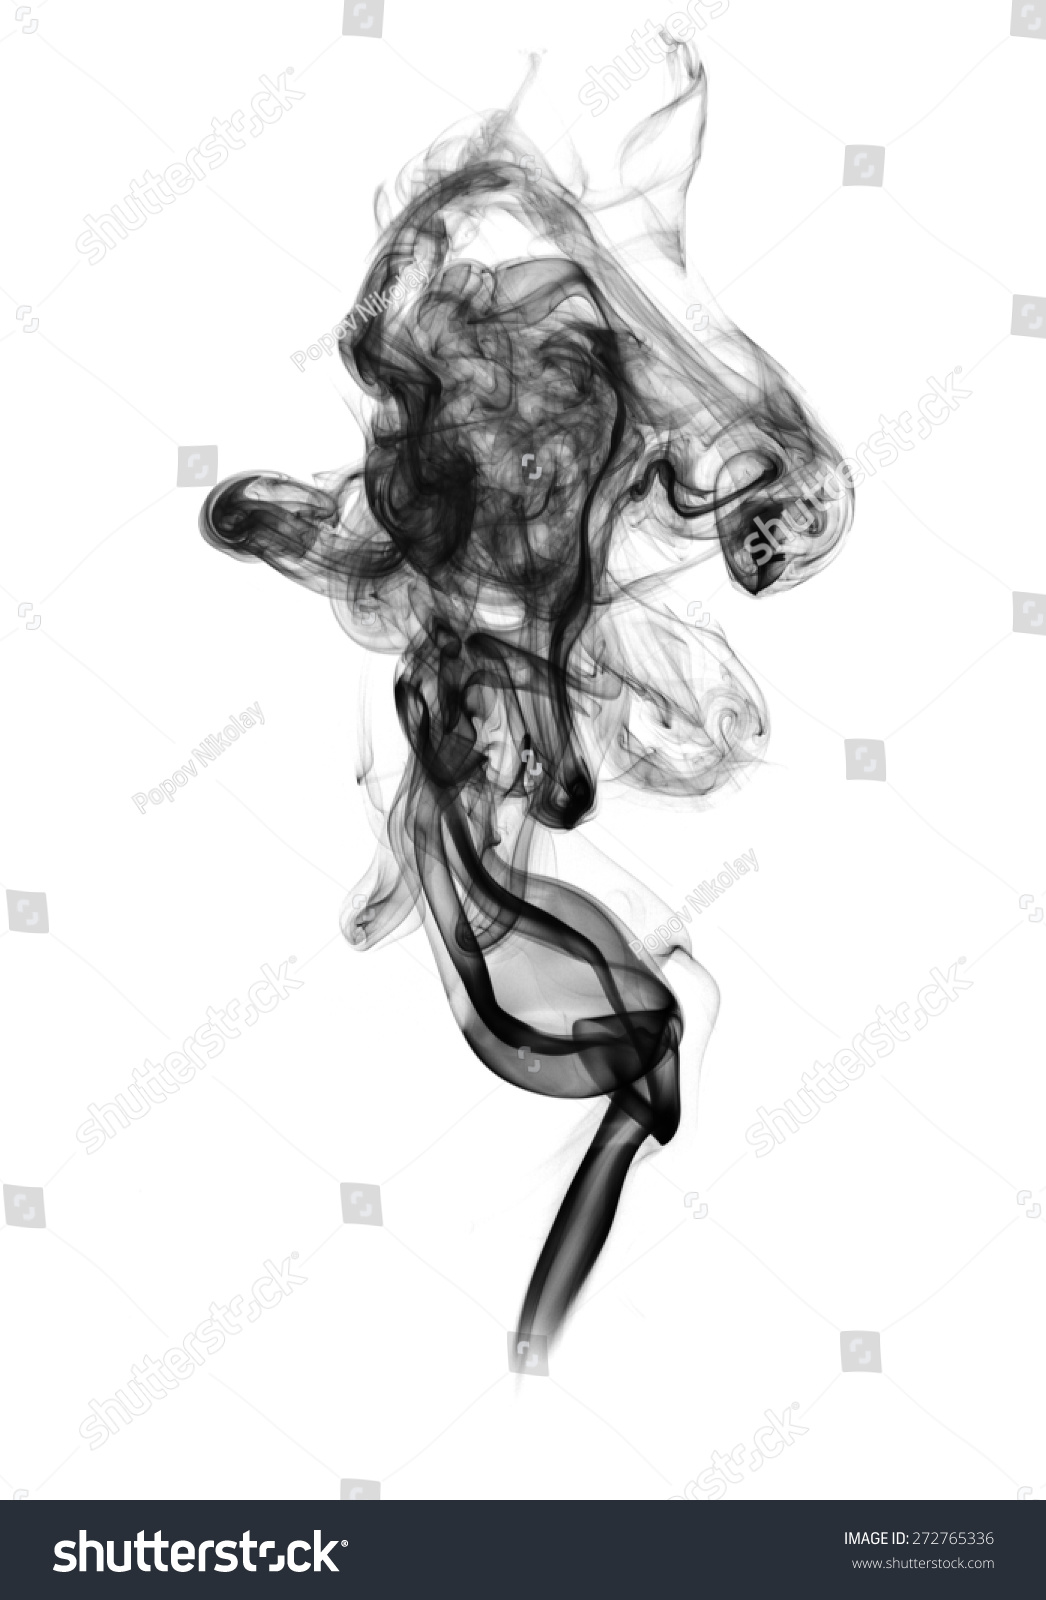 Black Smoke On White Background Stock Photo 272765336 ...